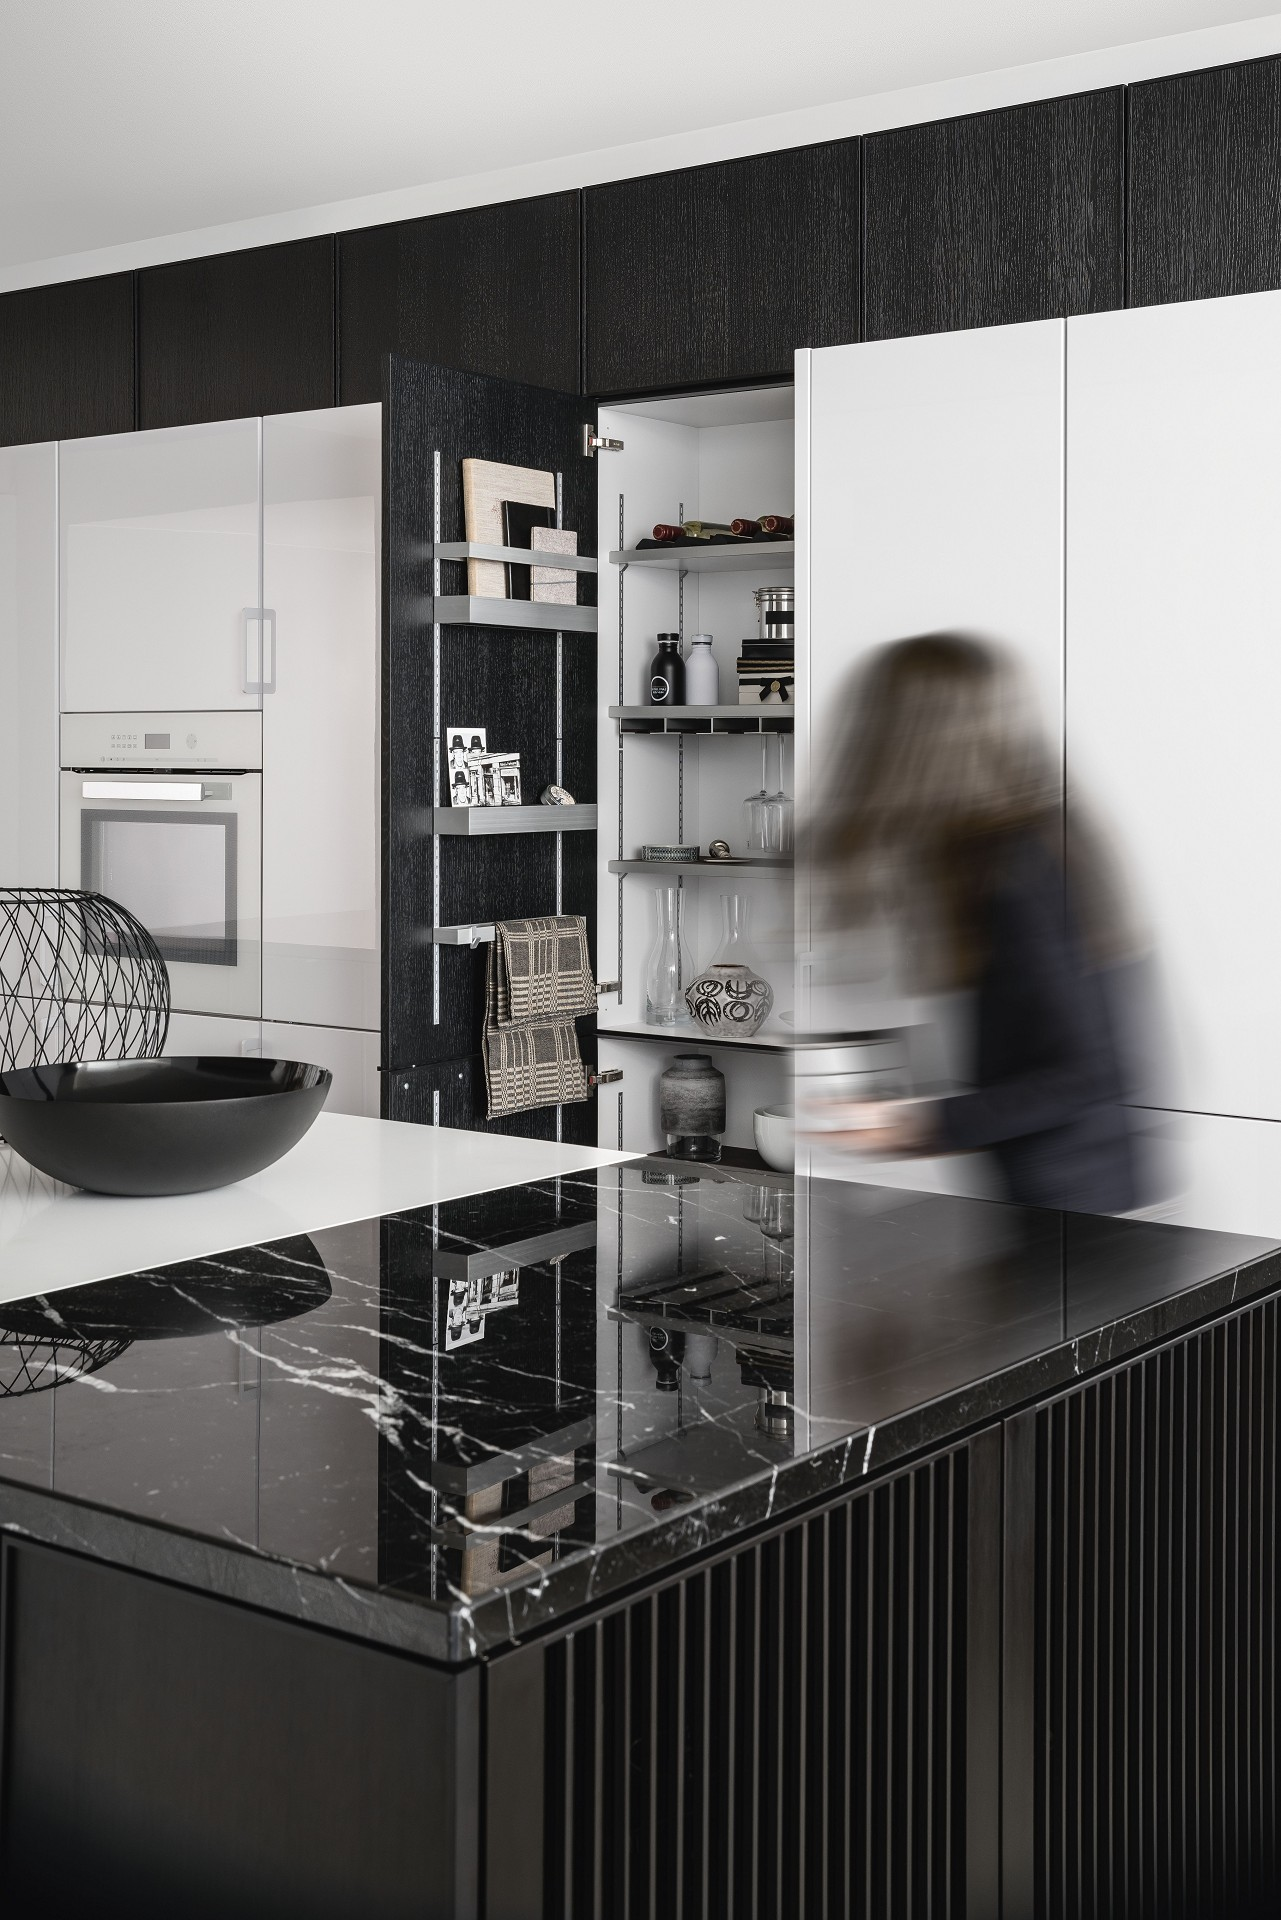 SieMatic Pure SE 3003 R kitchen cabinets in black matte oak with SieMatic MultiMatic interior organization system